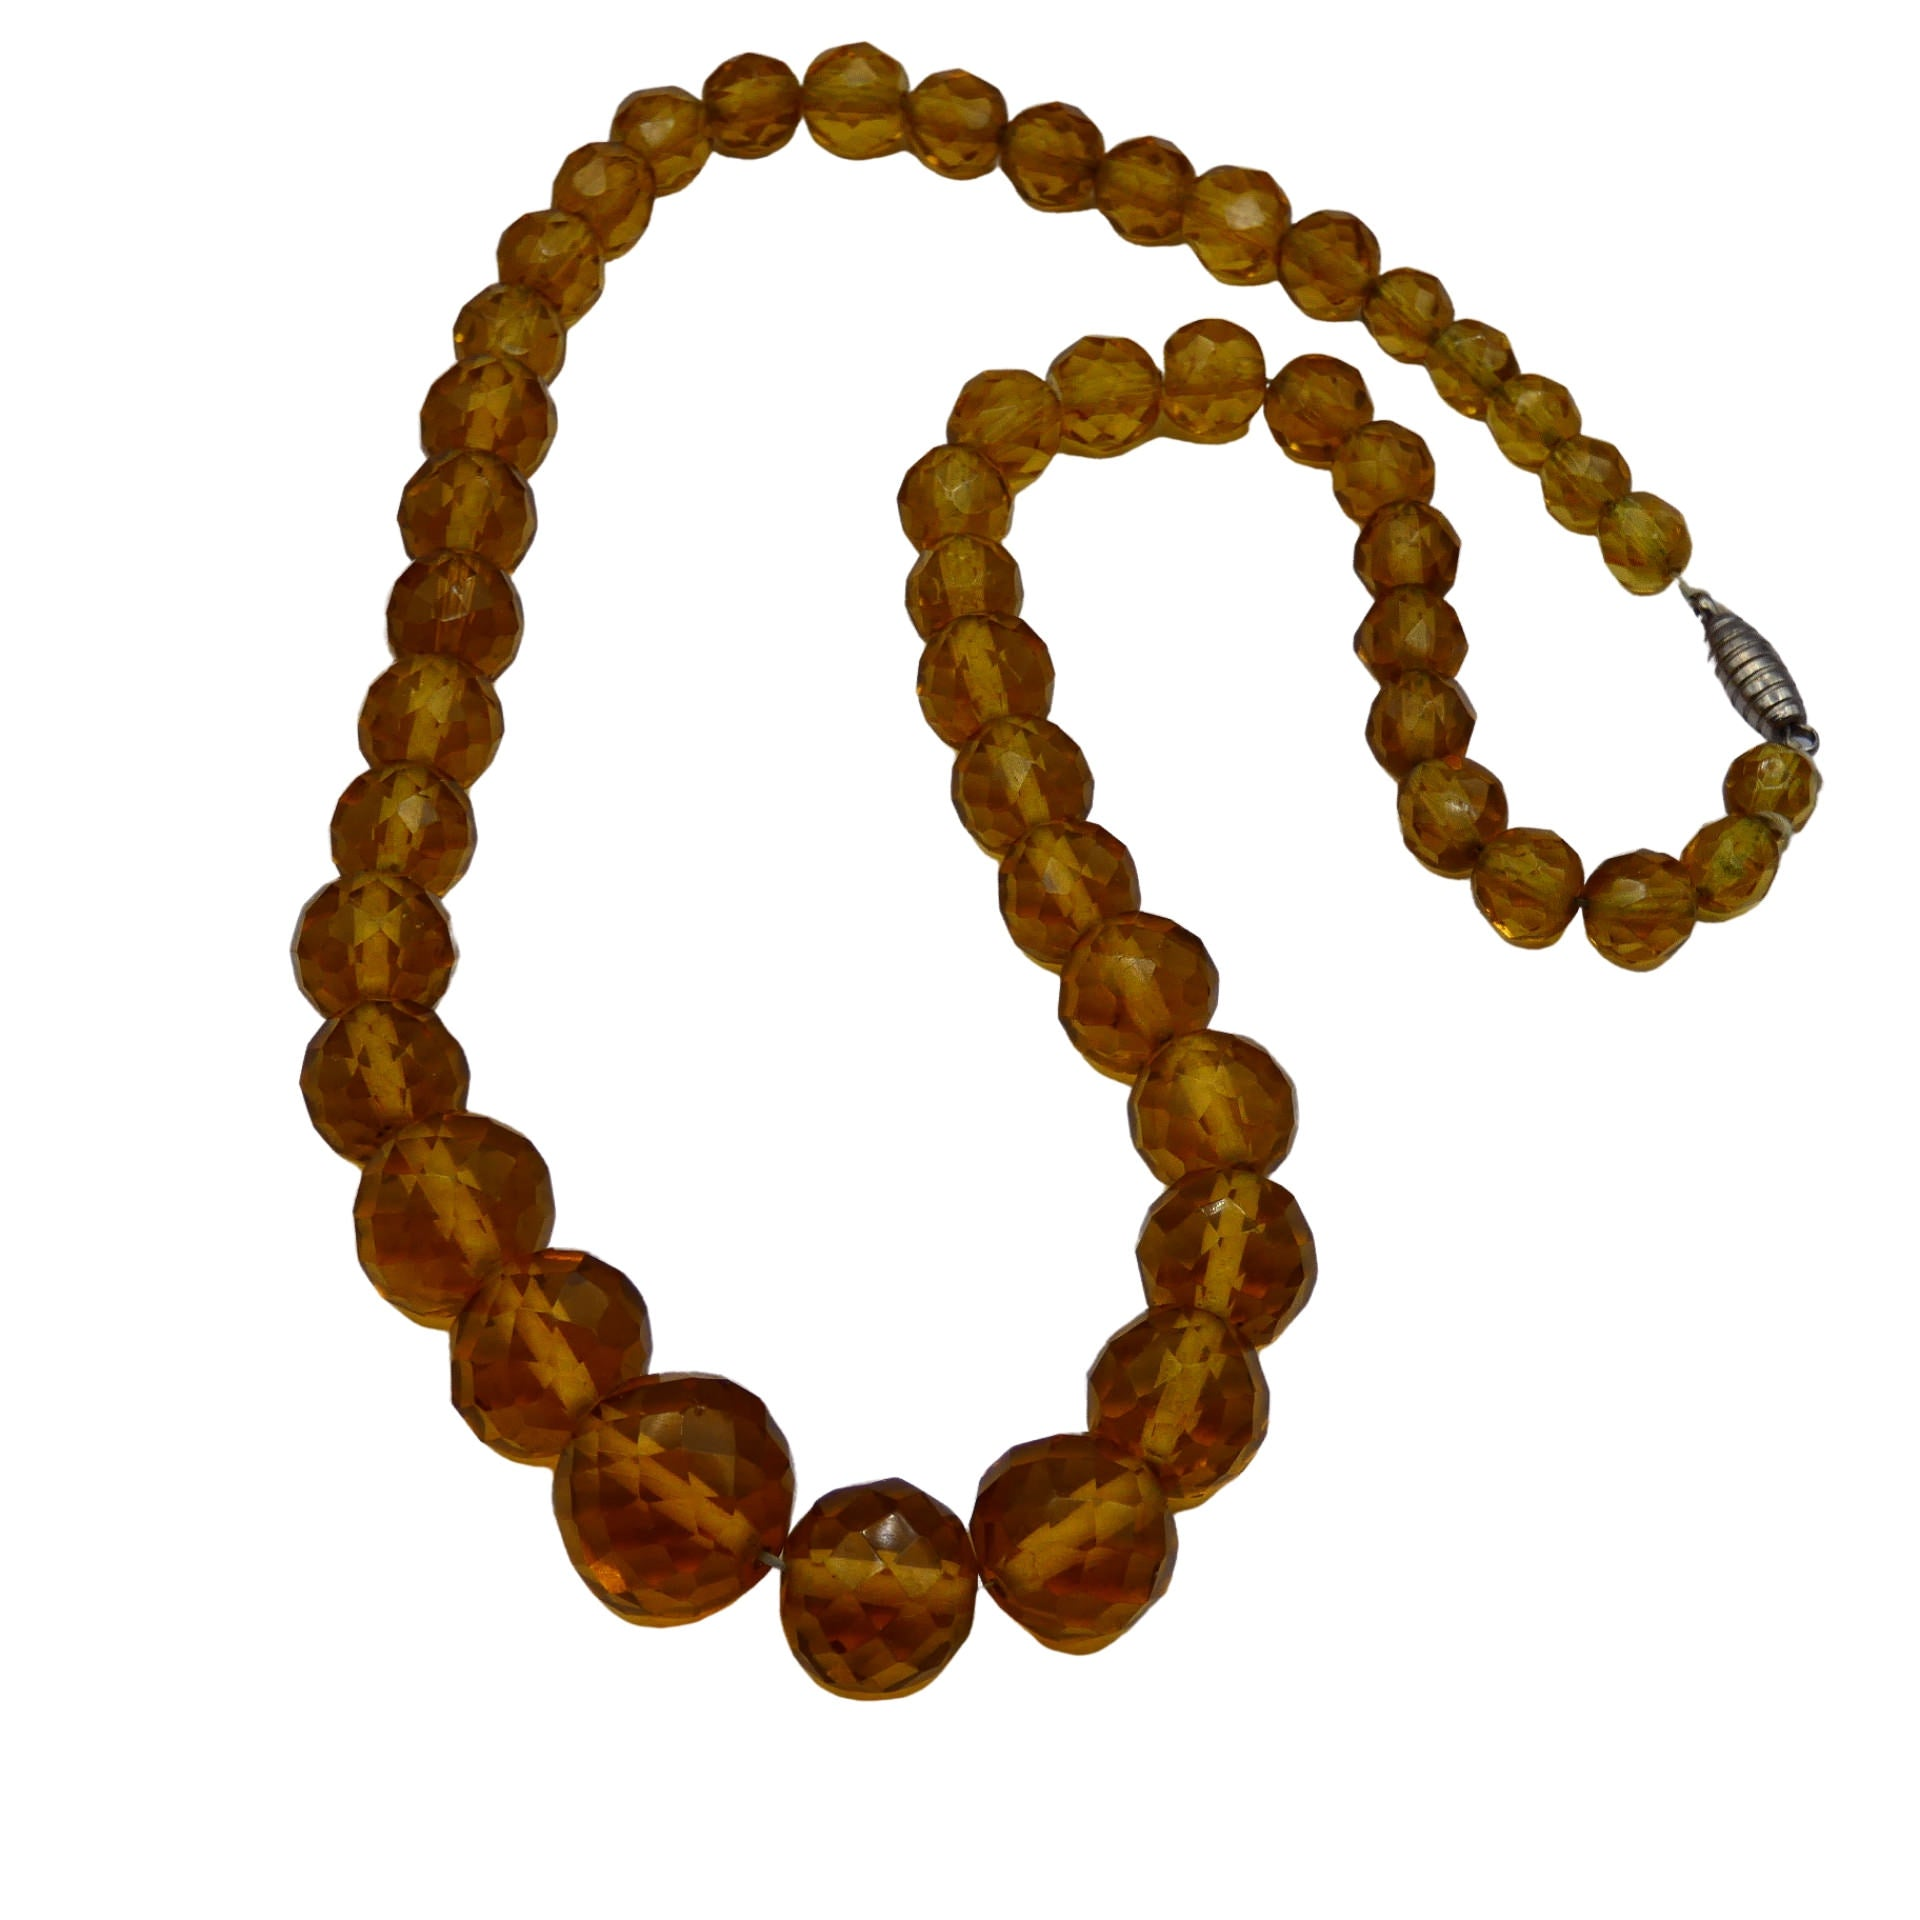 Retro Period Jewelry - Amber Cut Glass Necklace